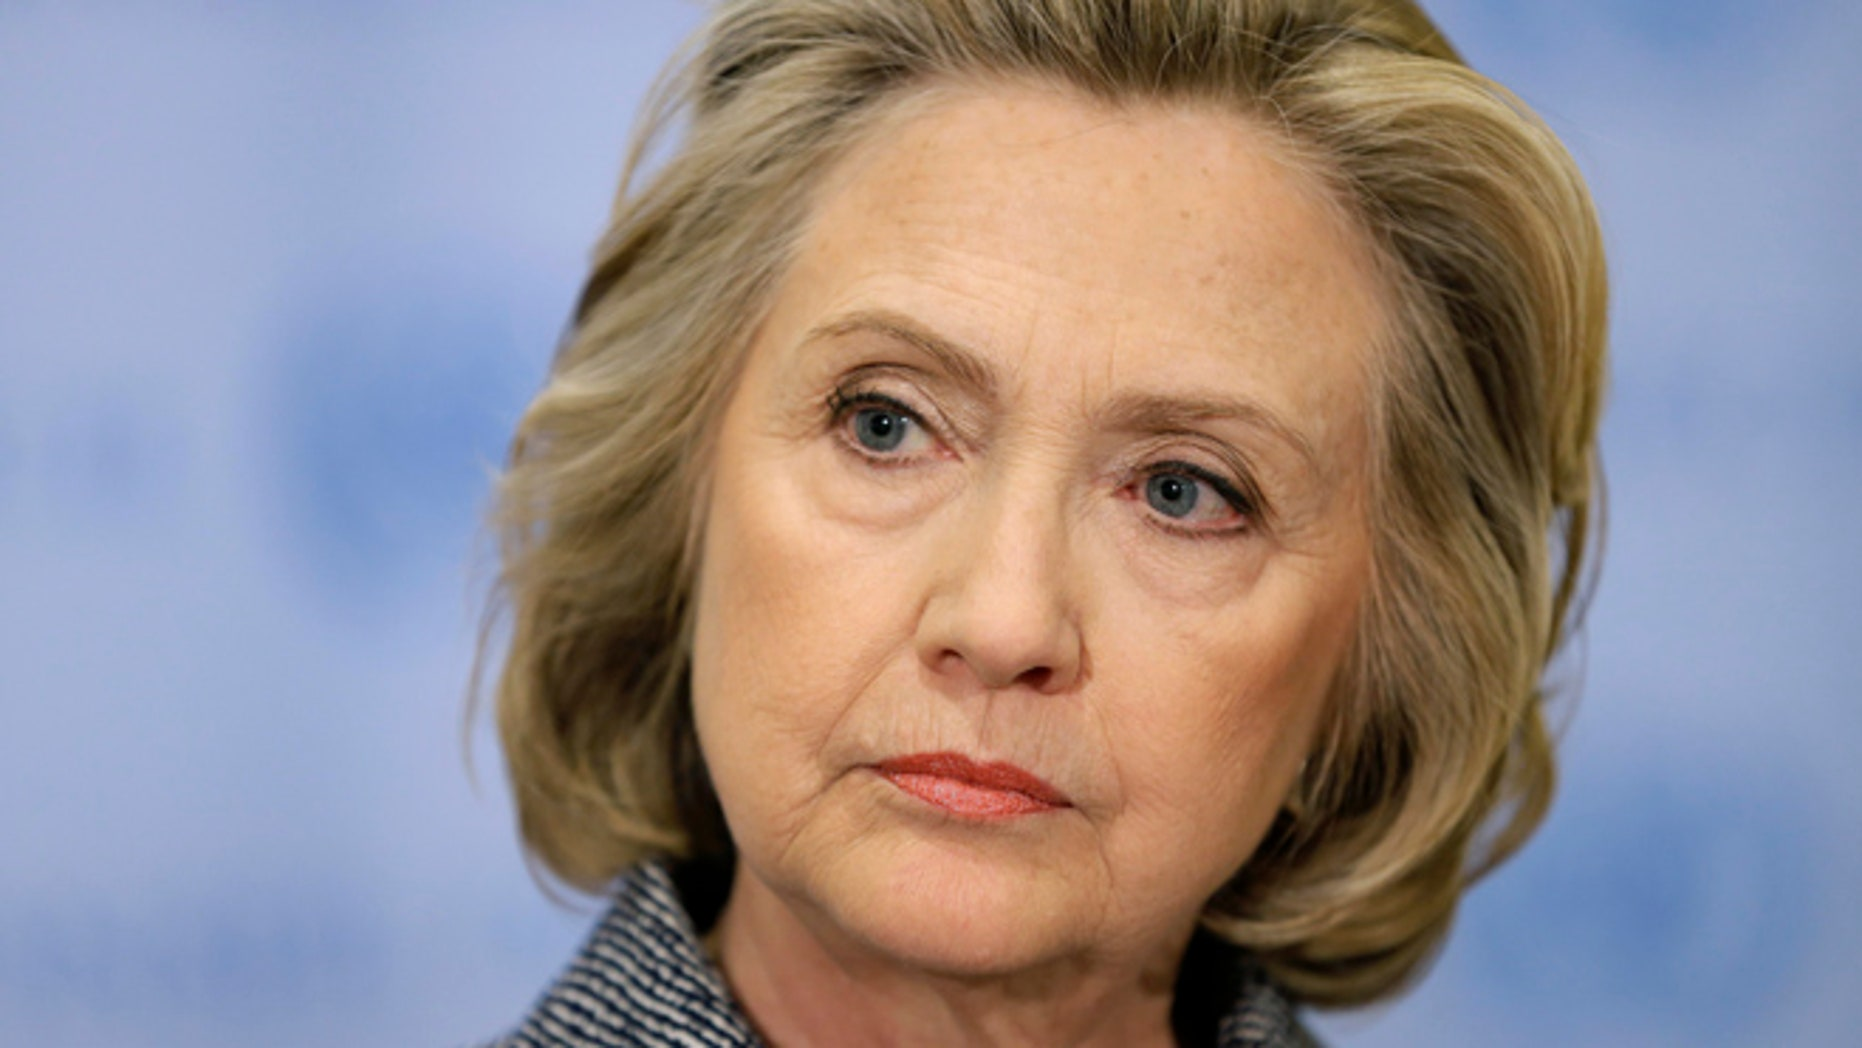 March 10, 2015: Hillary Rodham Clinton listens during a news conference at United Nations headquarters.